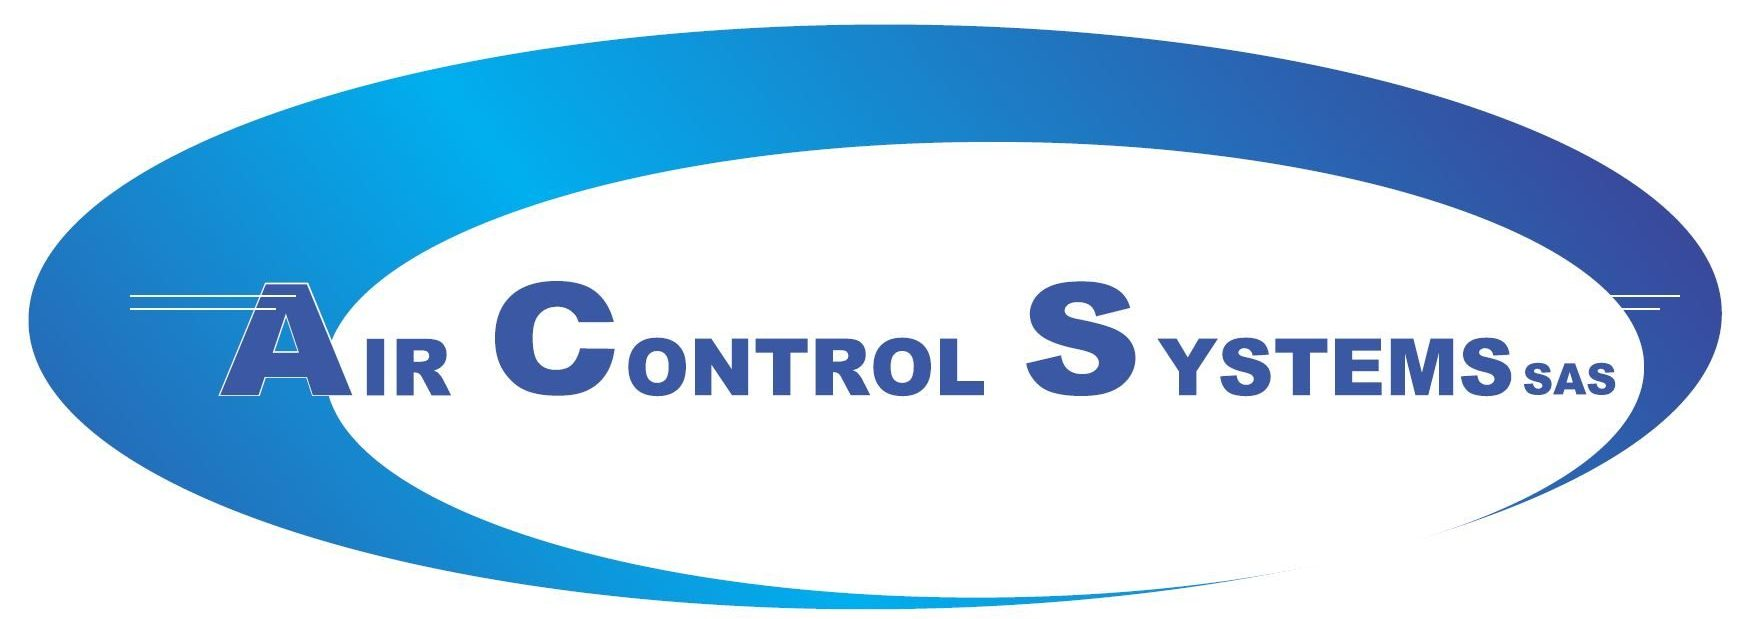 AIR CONTROL SYSTEMS SAS